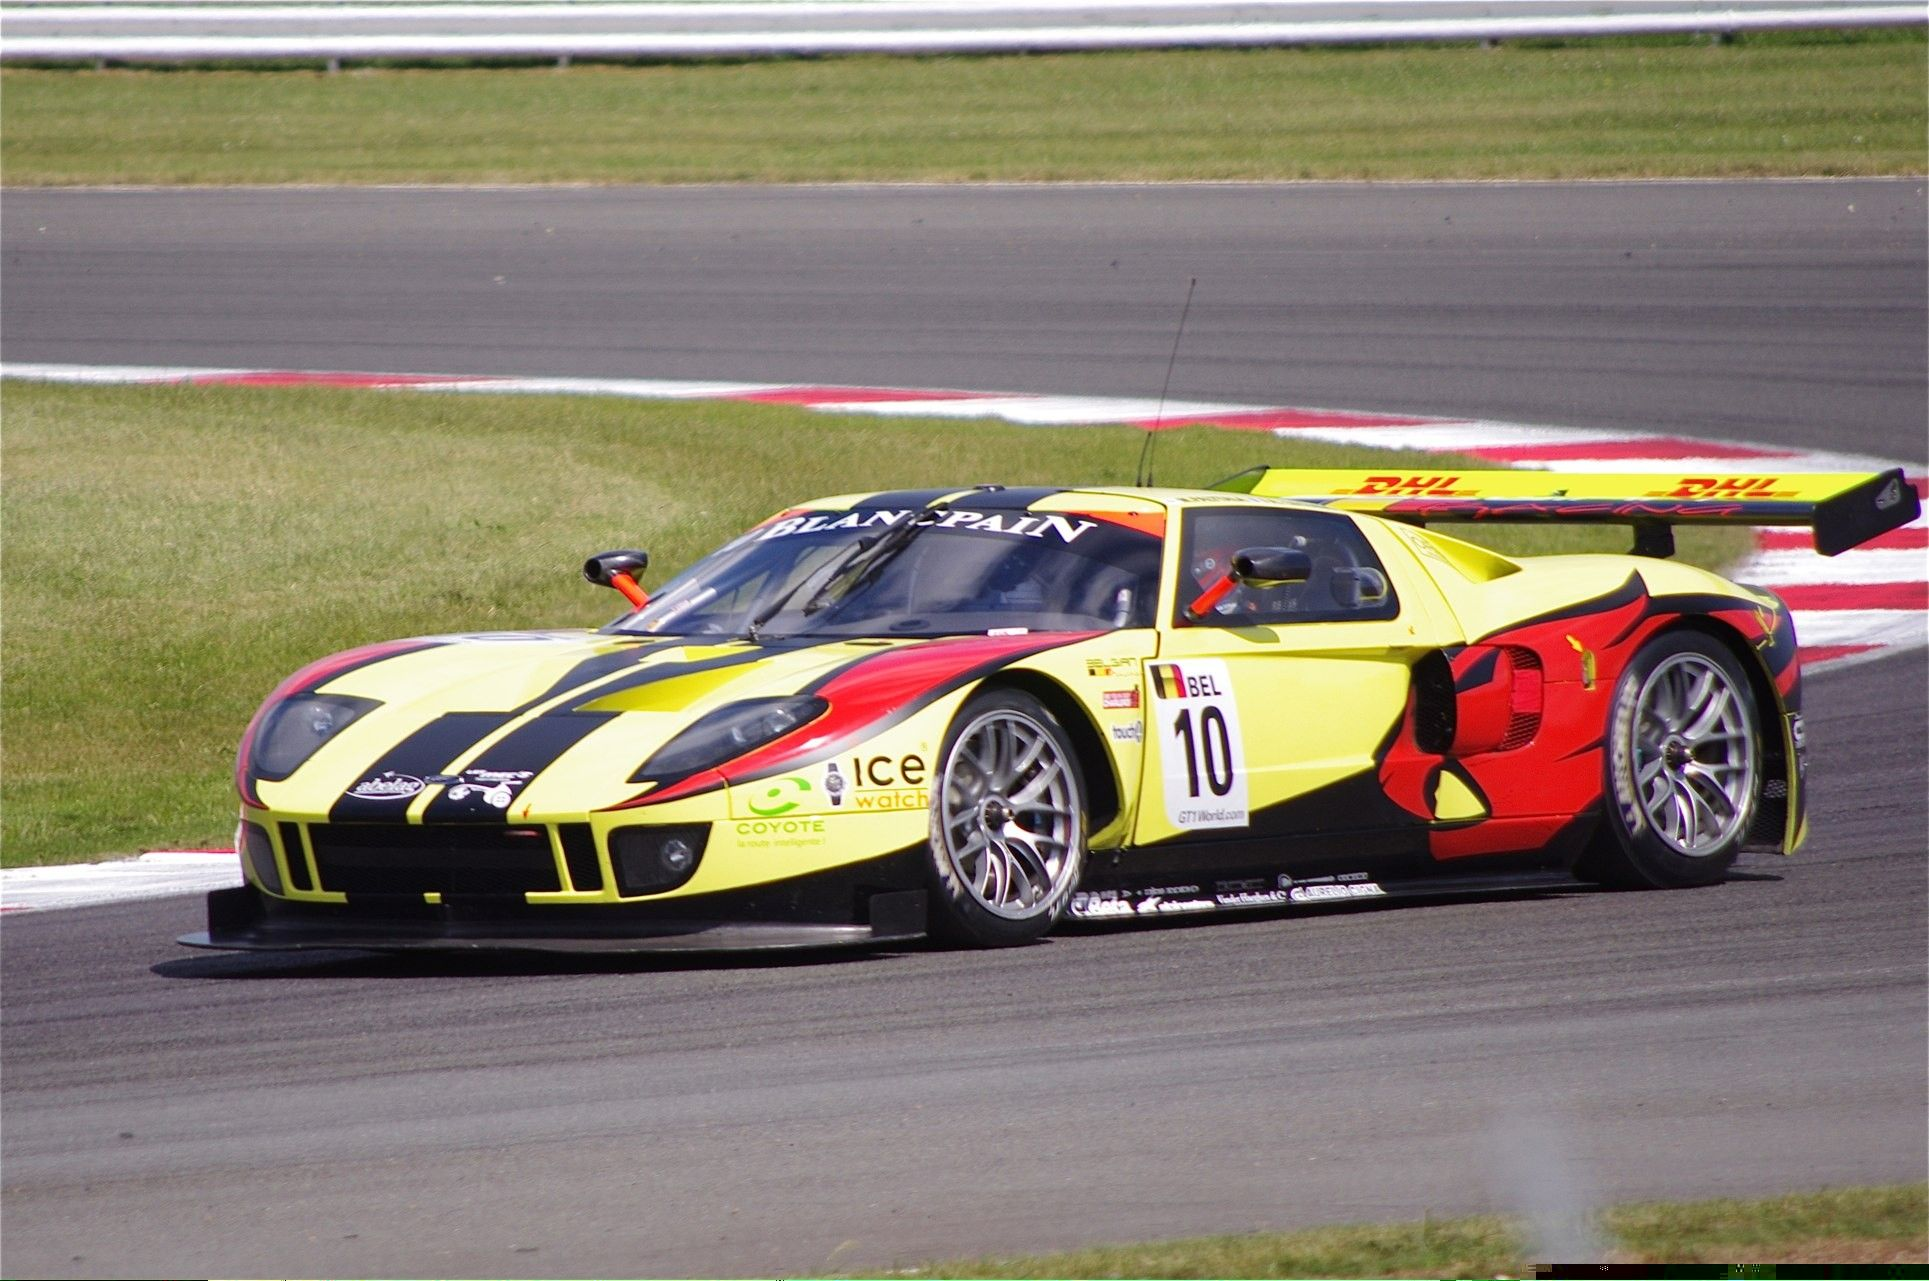 Best Race Car Trader Pictures Inspiration - Classic Cars Ideas ...